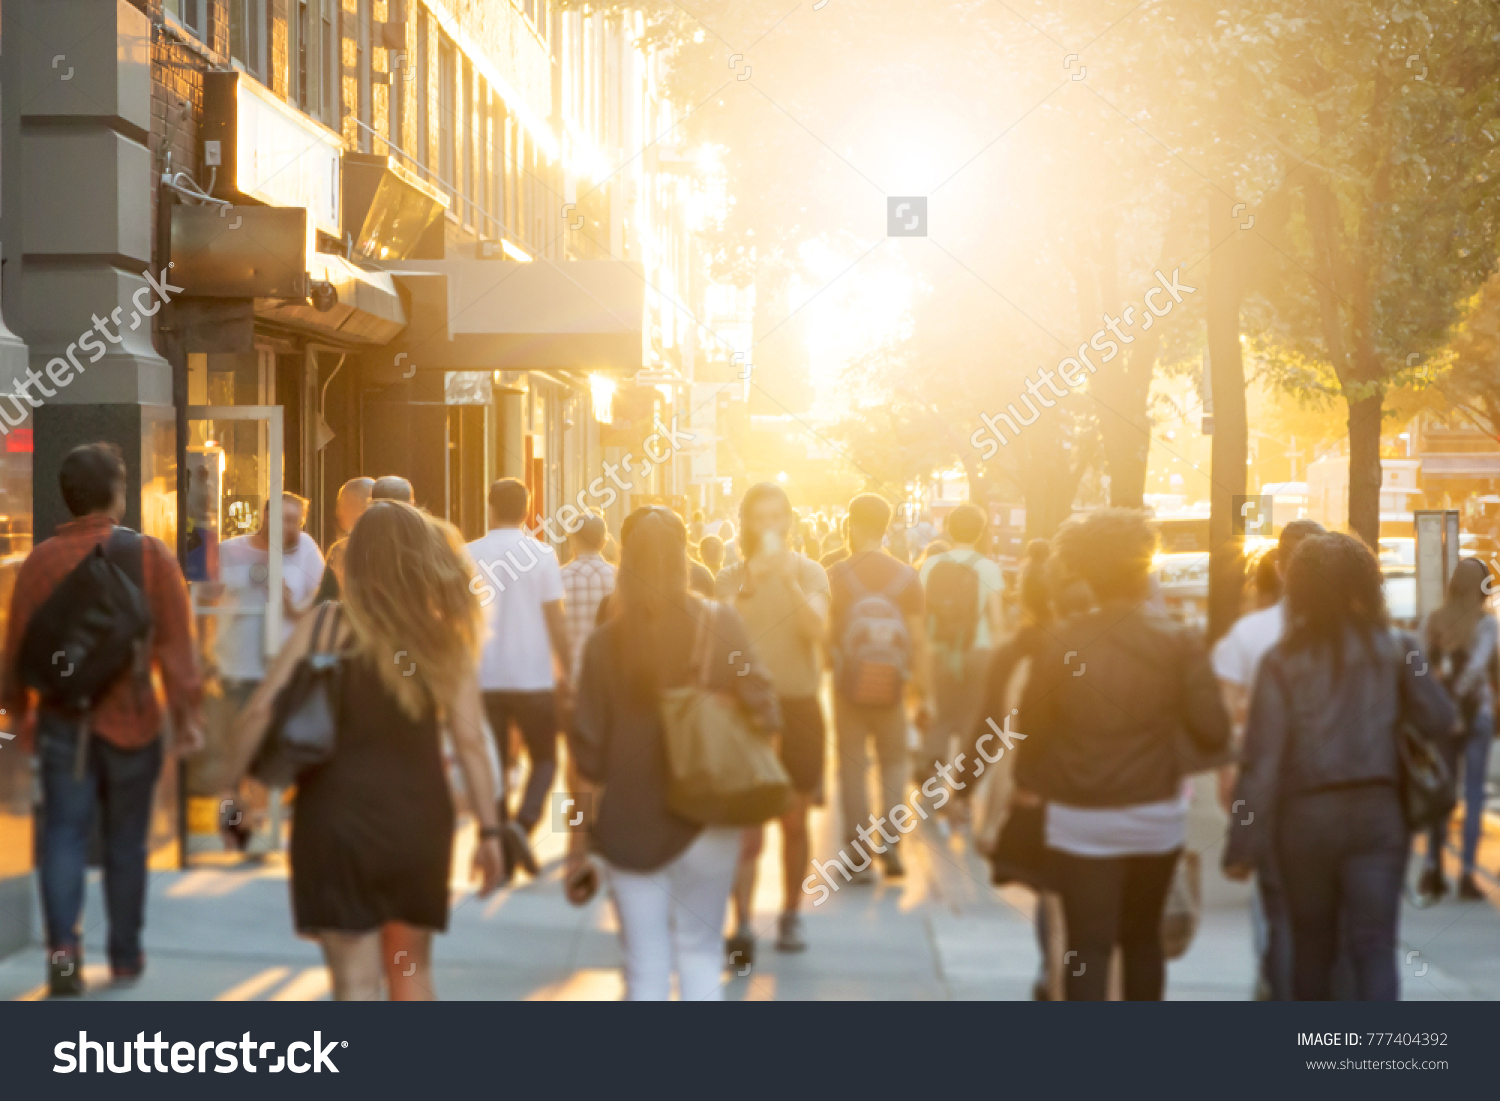 Crowd of anonymous men and women walking down an urban sidewalk with bright glowing sunlight in the background on a busy street in downtown Manhattan, New York City  #777404392